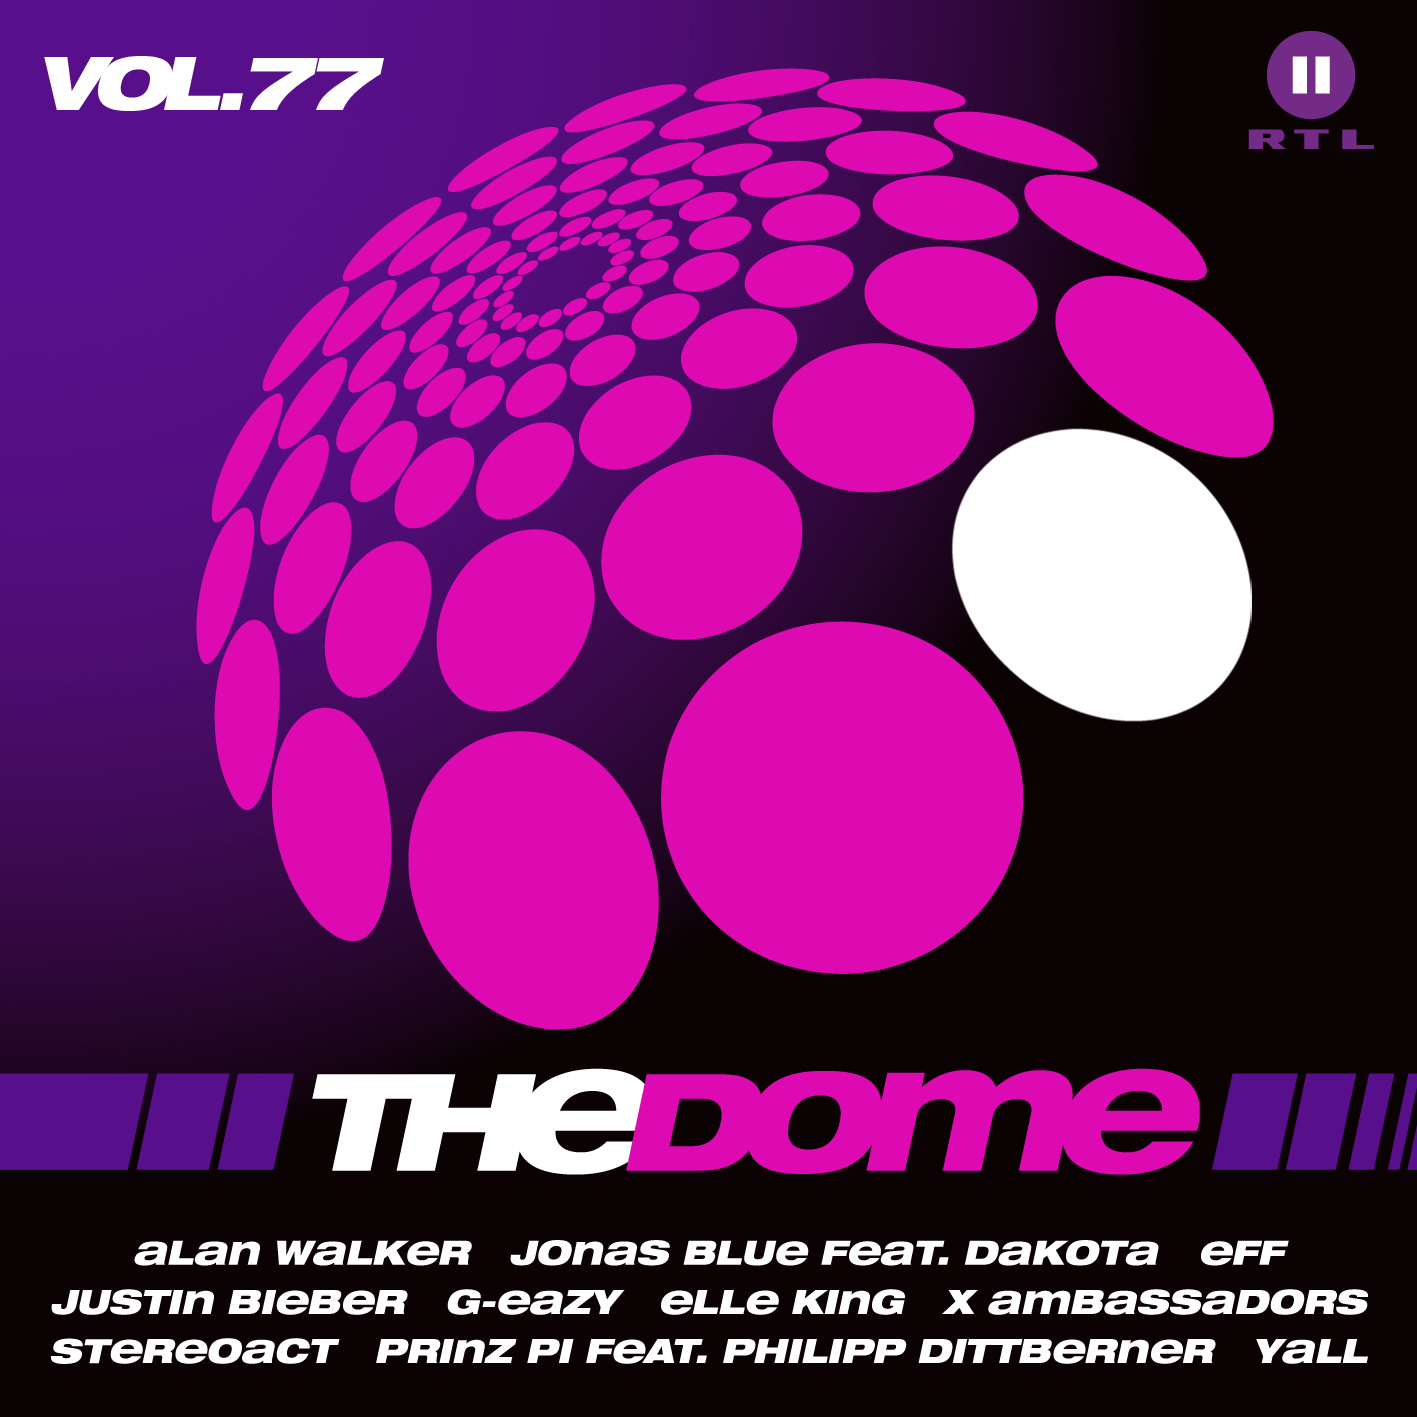 The Dome 77